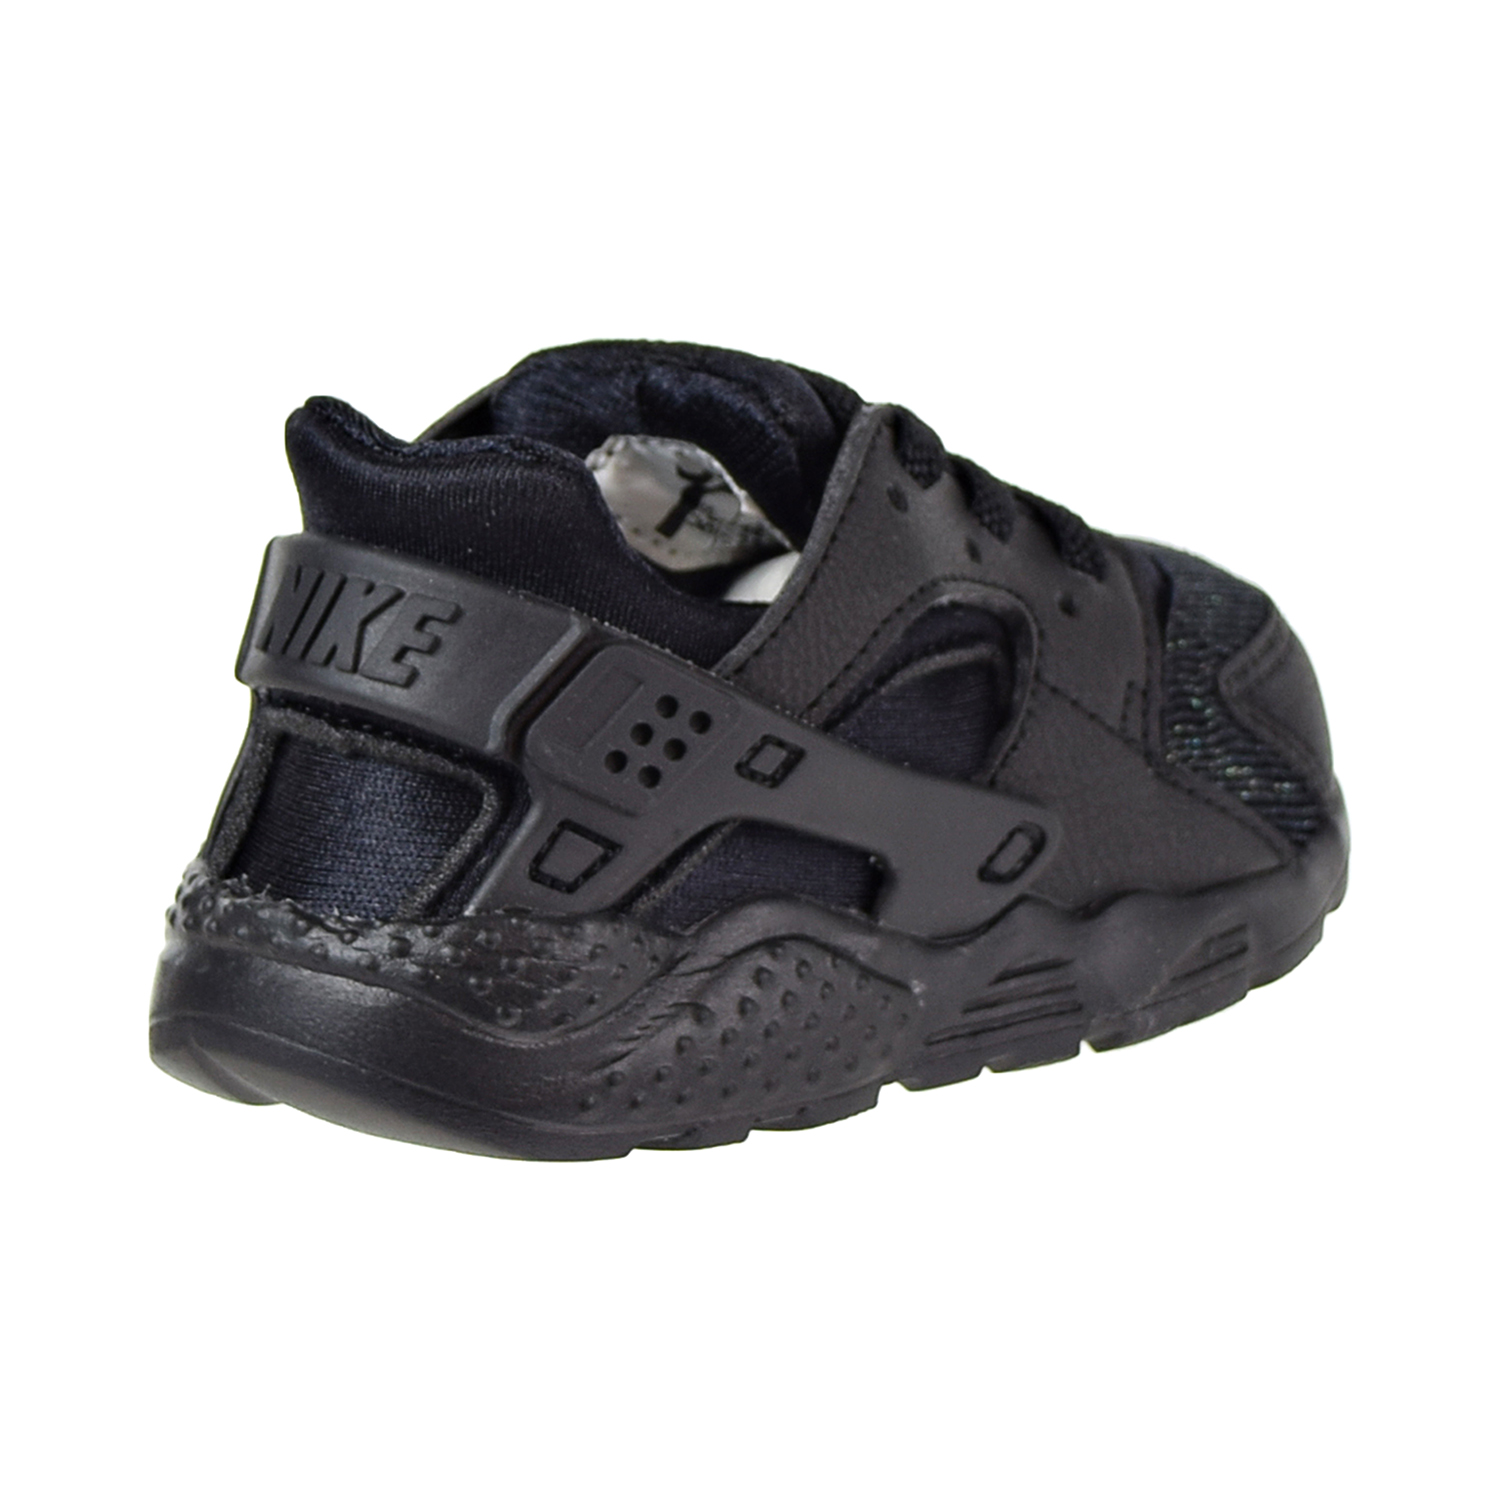 c5793700bb184 Nike Huarache Run SE Toddler's Shoes Black/Black 859592-009 | eBay